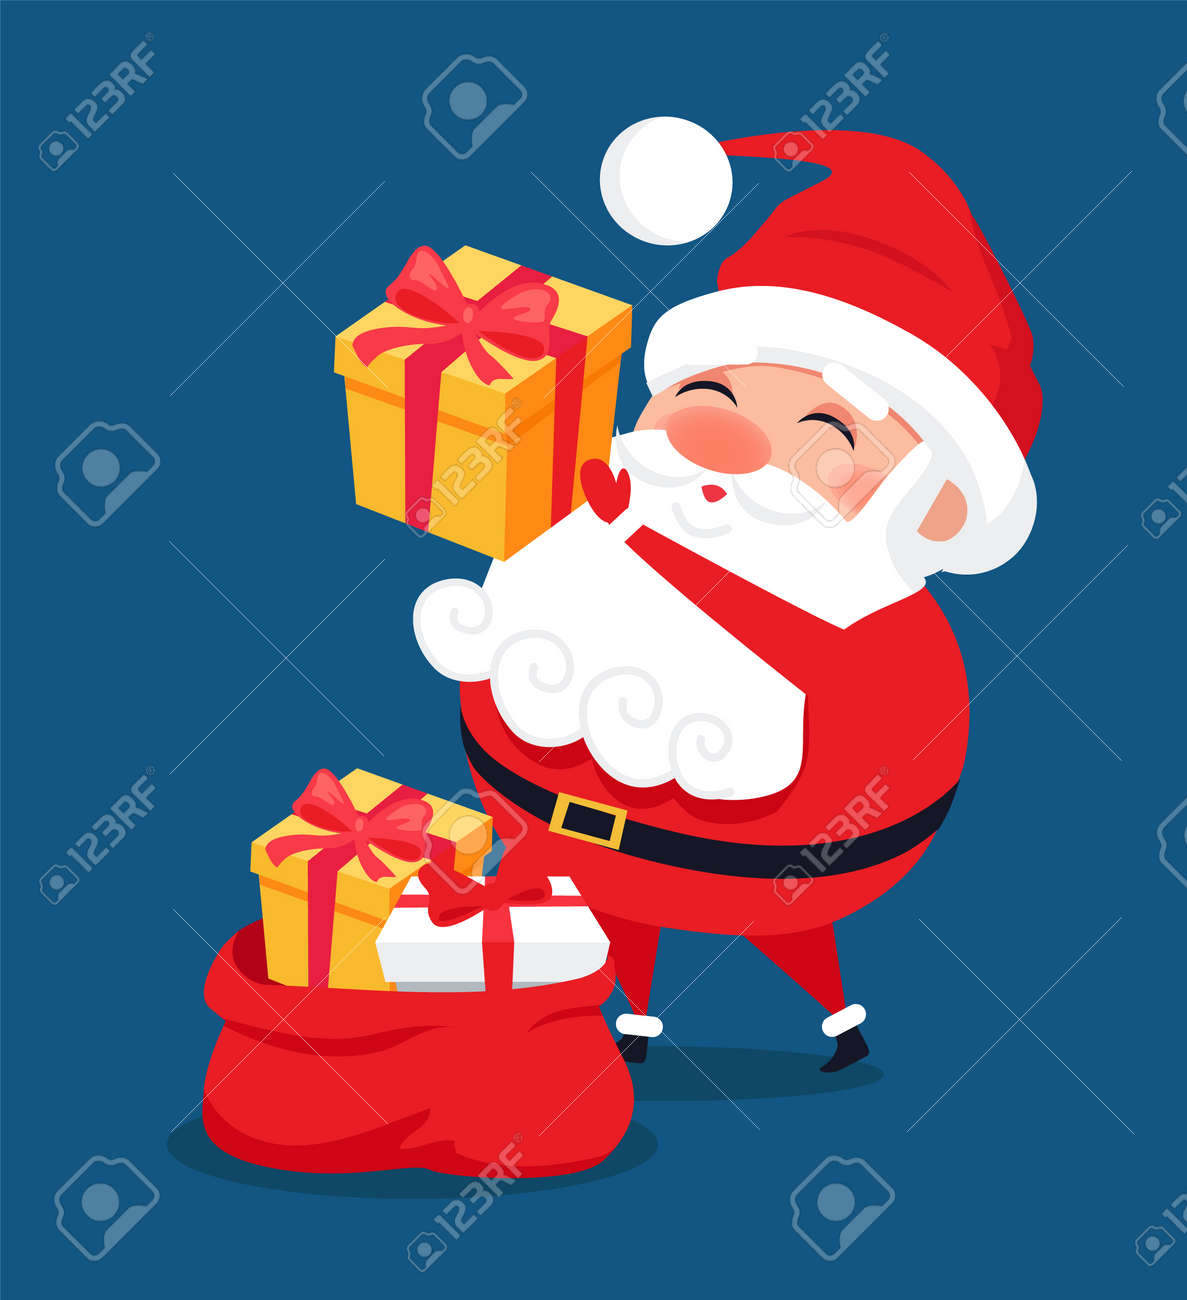 Father Christmas Images Free.Merry Santa Claus Put Presents Into Red Bag Father Christmas